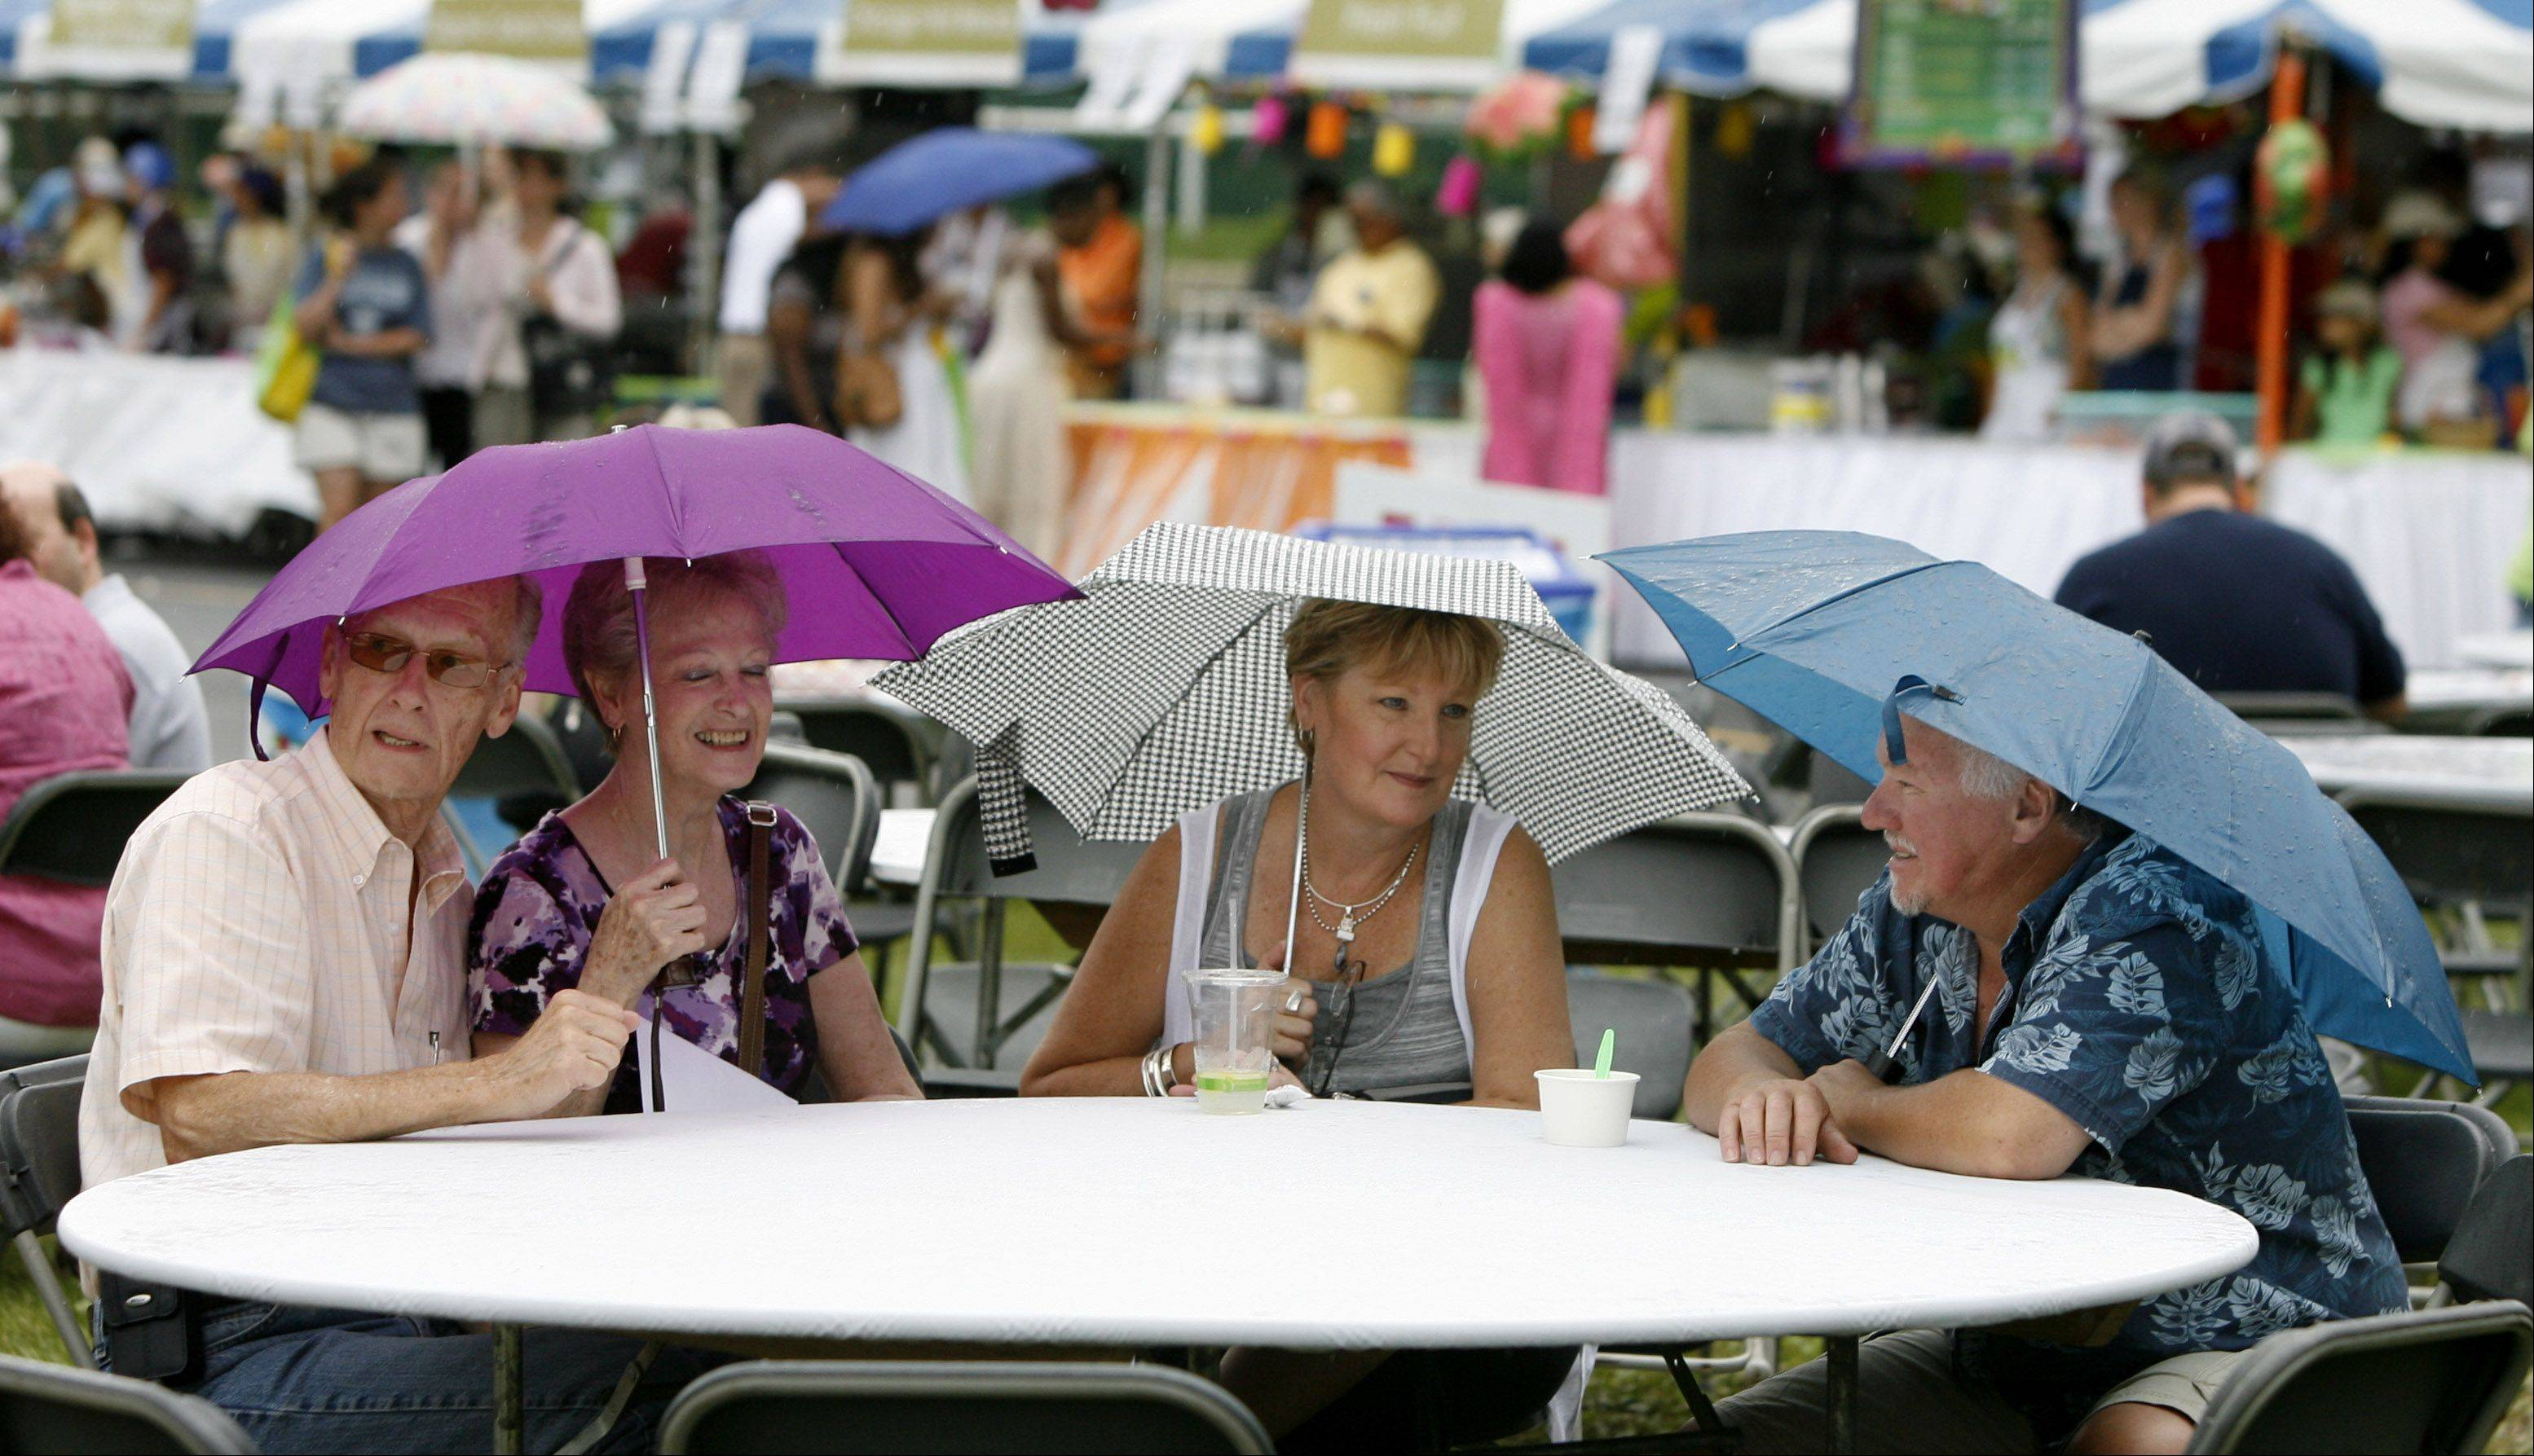 Even in the rain, Veggie Fest strives to focus on the diet and lifestyle choice that is vegetarianism. The annual celebration in Naperville continues from 11 a.m. to 8 p.m. today near Warrenville and Naperville roads.